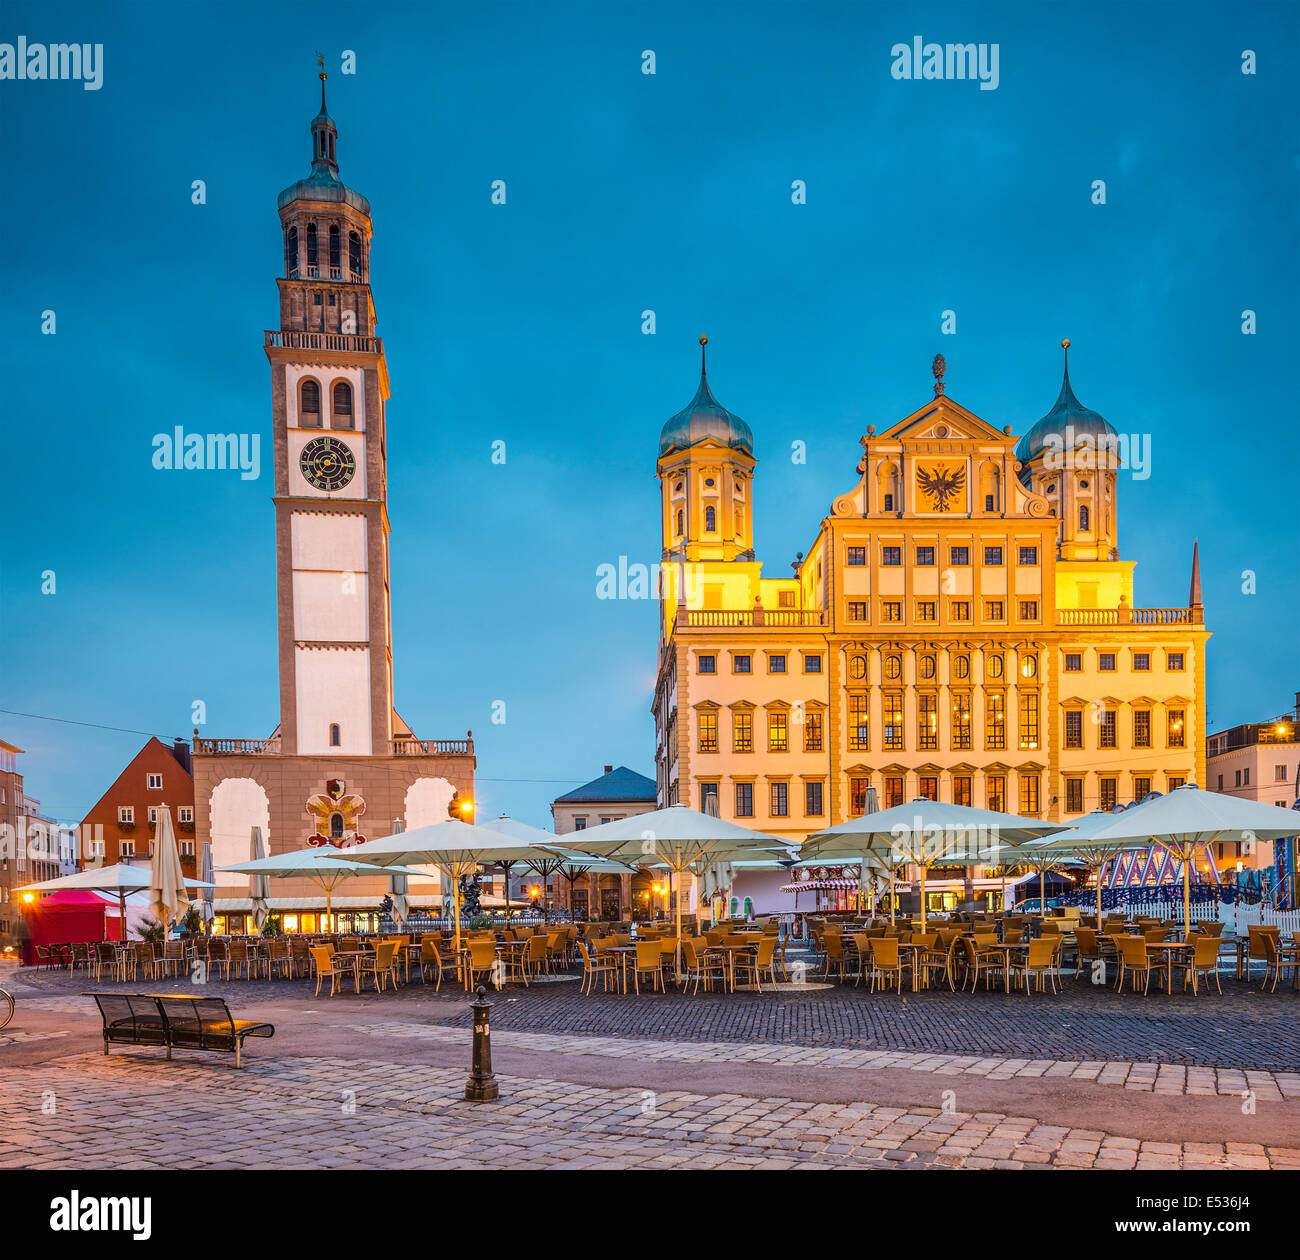 Augsburg, Allemagne ville scape au Burgtheater Plaza. Photo Stock